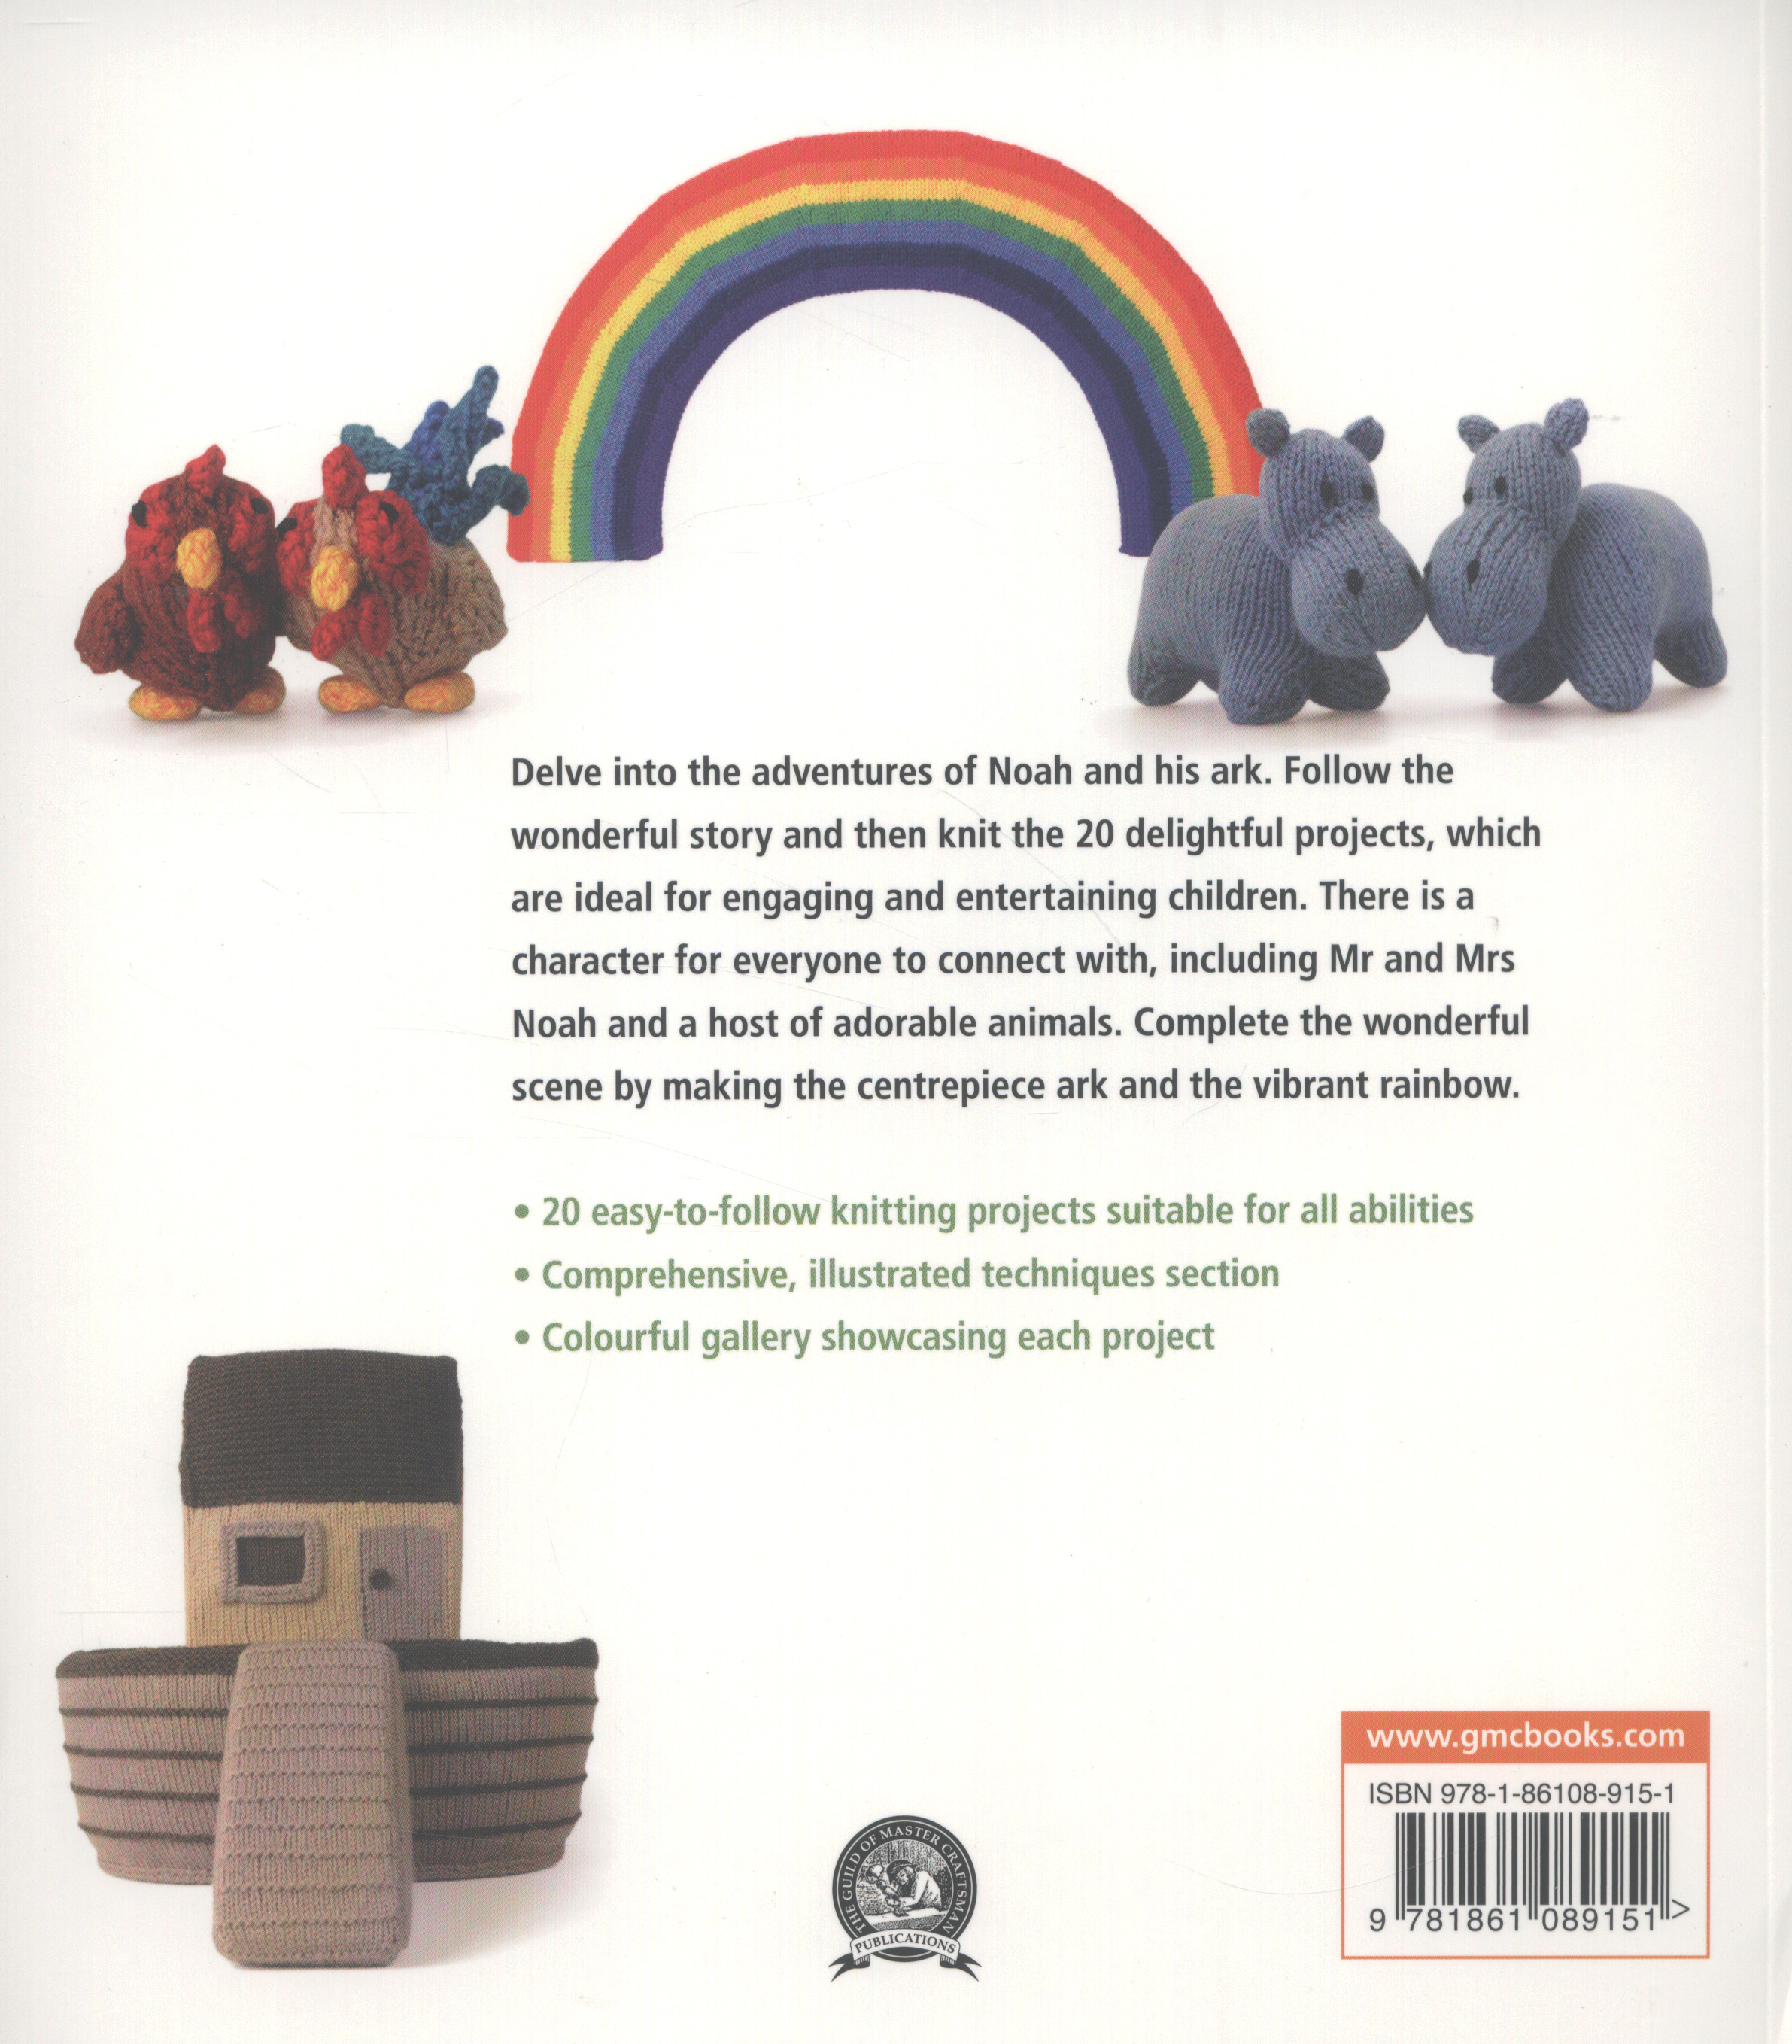 Knitted Noah's ark : a collection of charming characters to